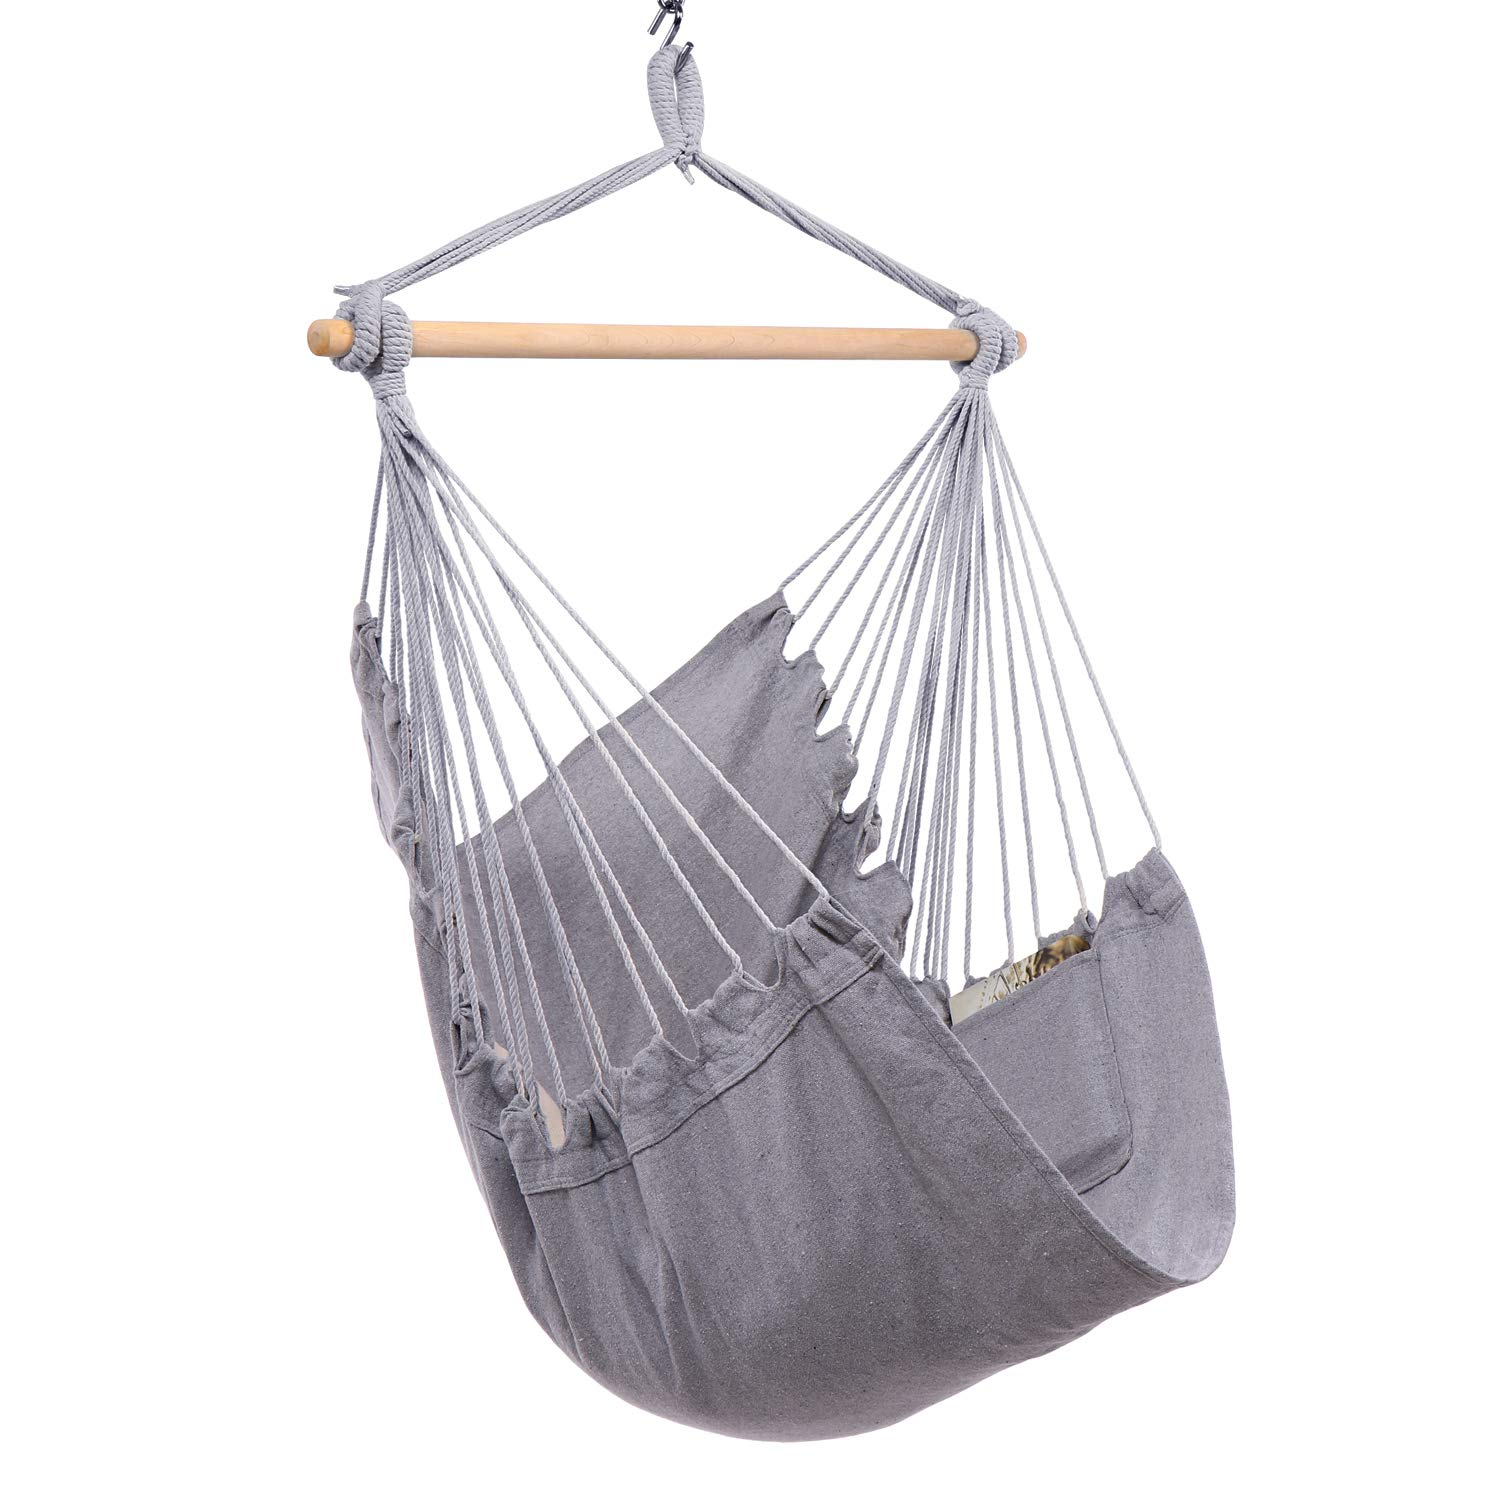 Y- STOP Hammock Chair Hanging Rope Swing, Max 330 Lbs, Quality Cotton Weave for Superior Comfort, Durability (Light Grey)